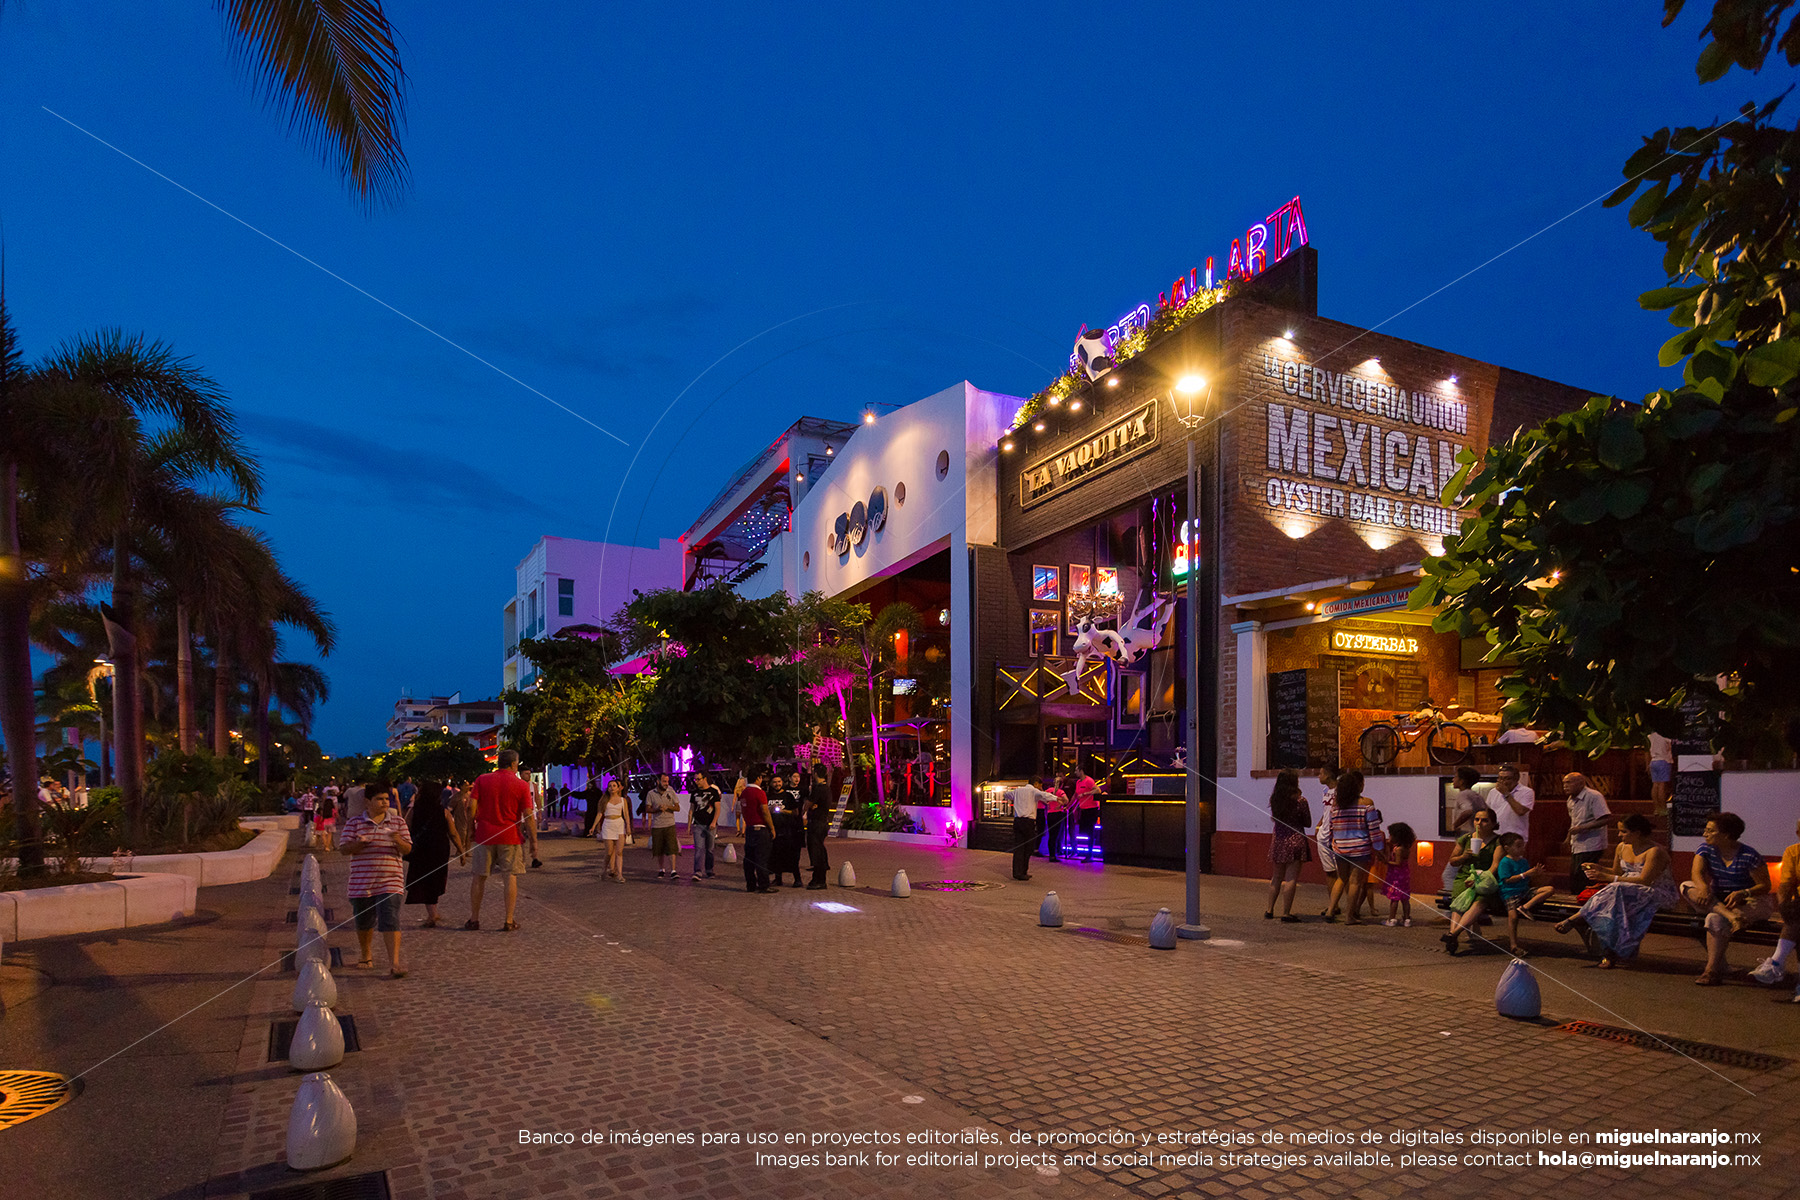 Puerto Vallarta's night life